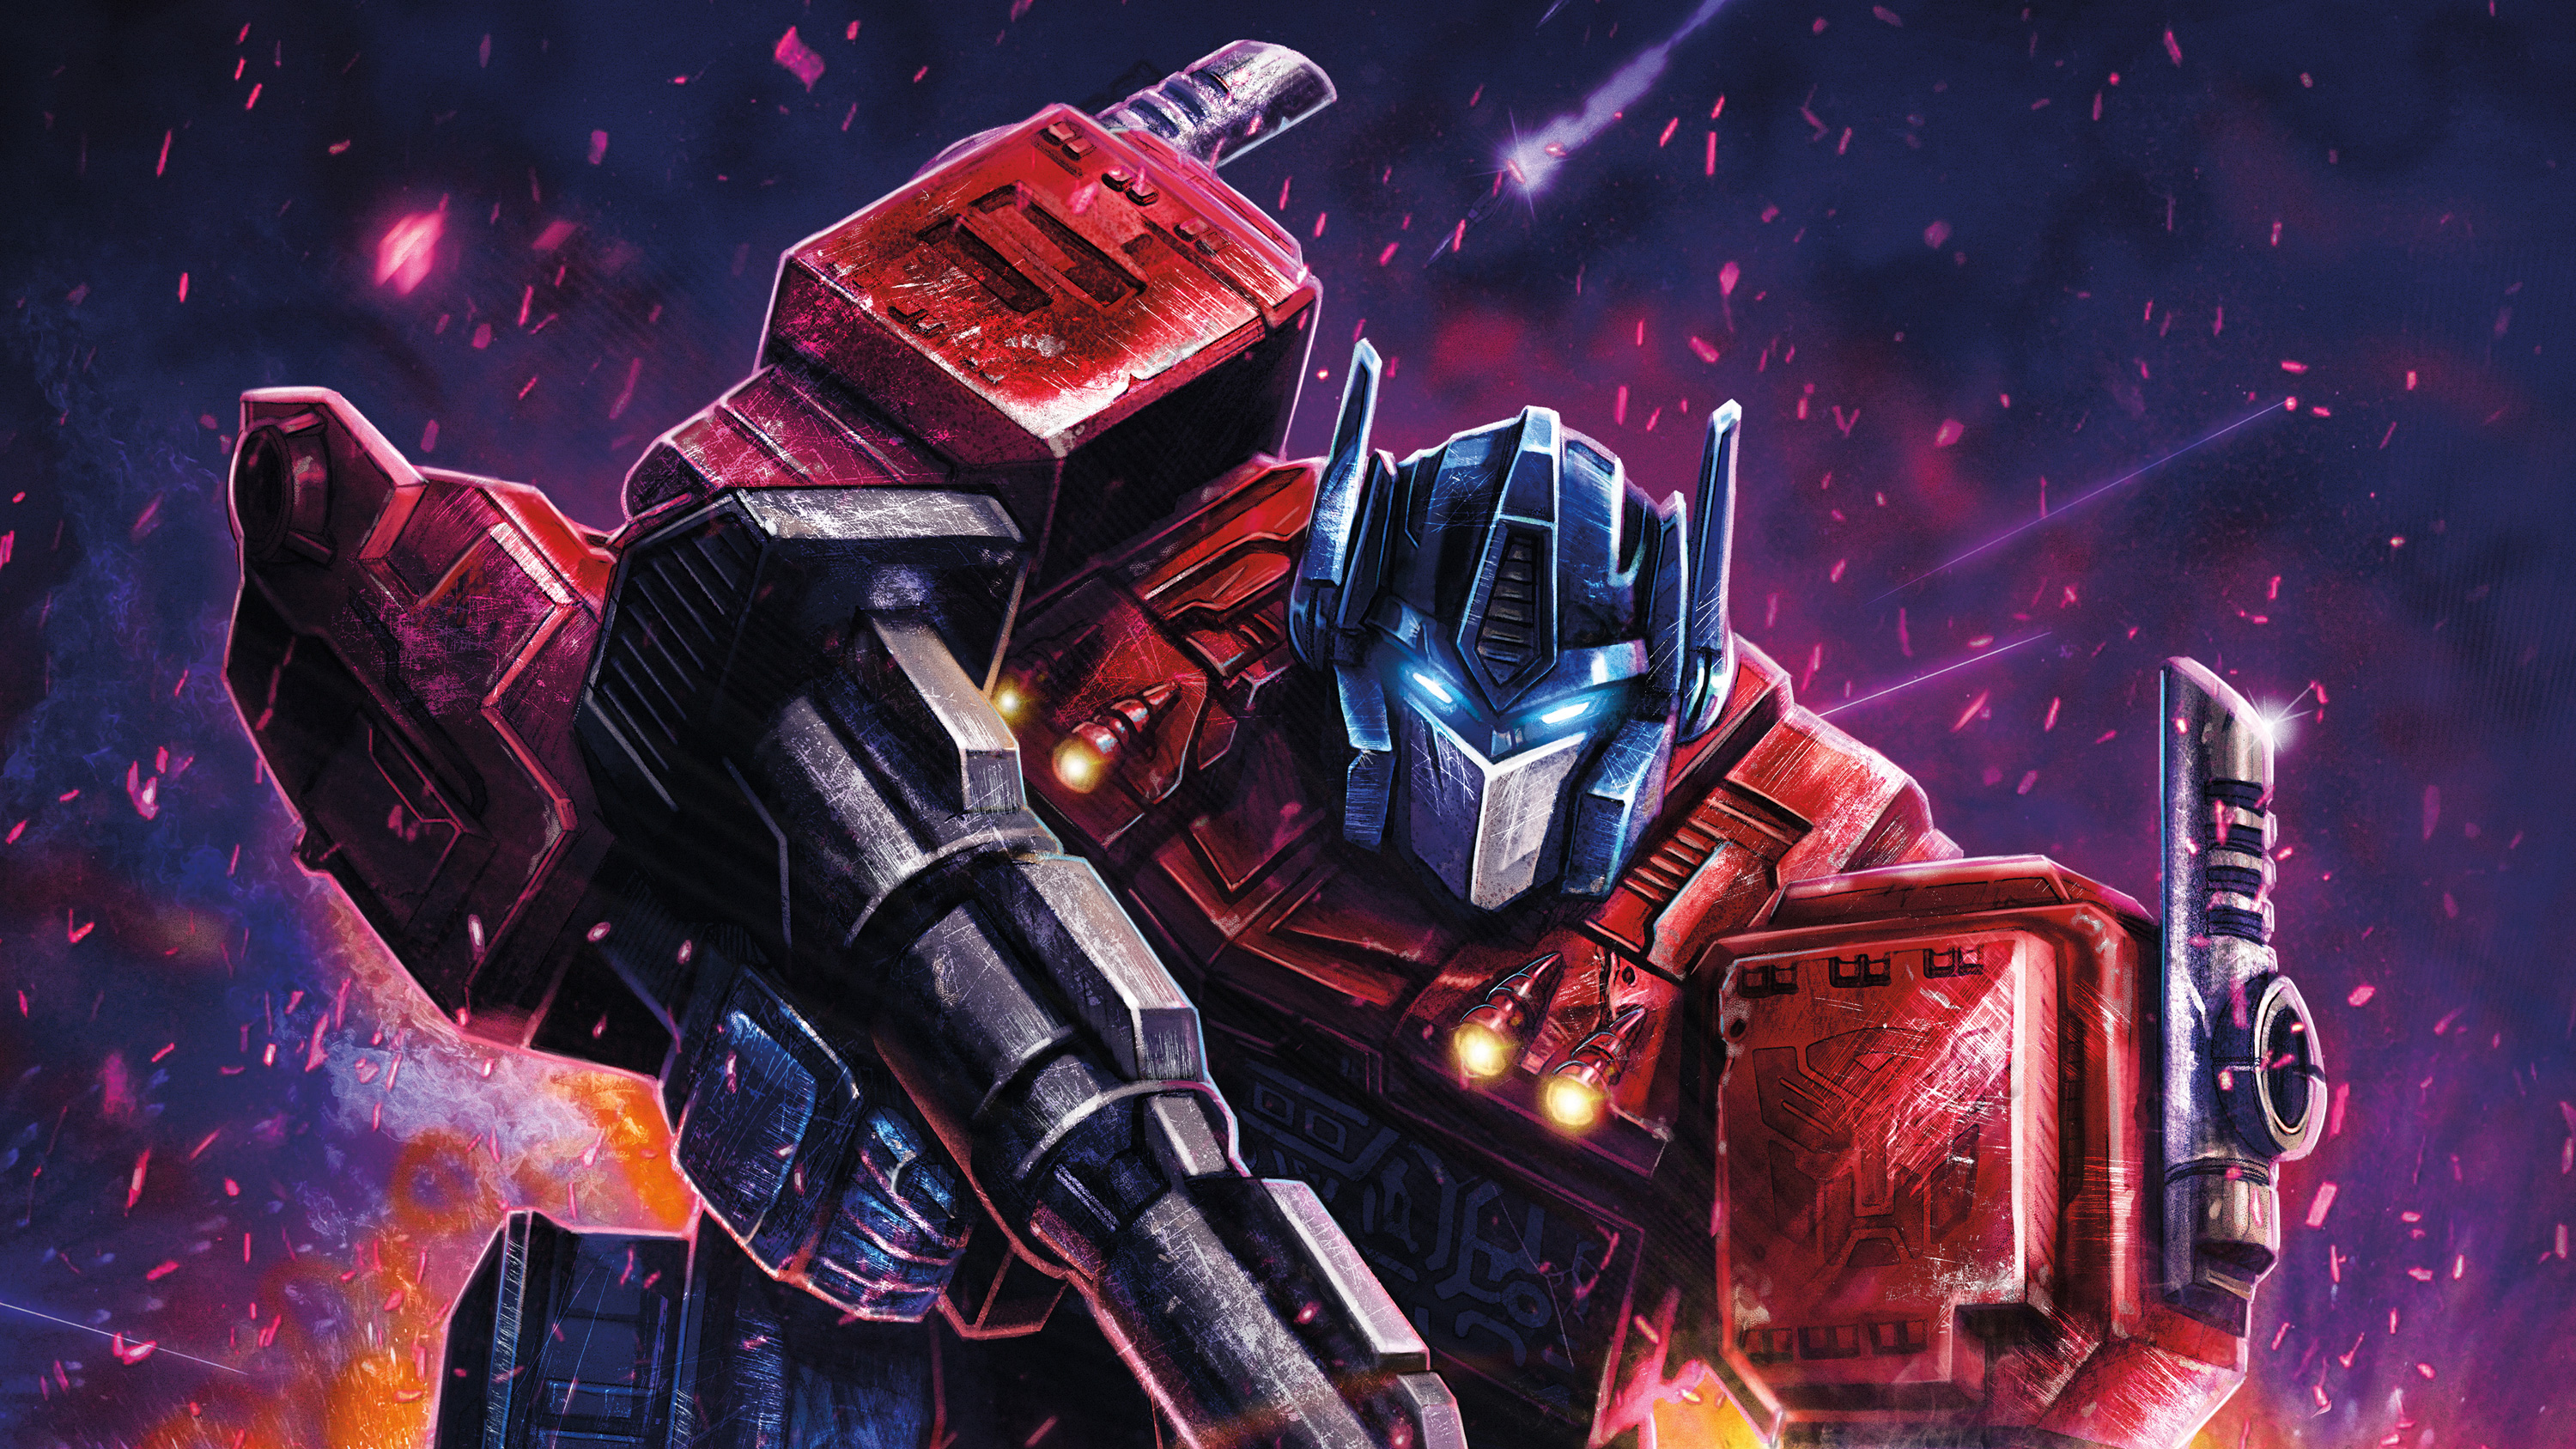 Optimus Prime Transformers Digital Art, HD Artist, 4k